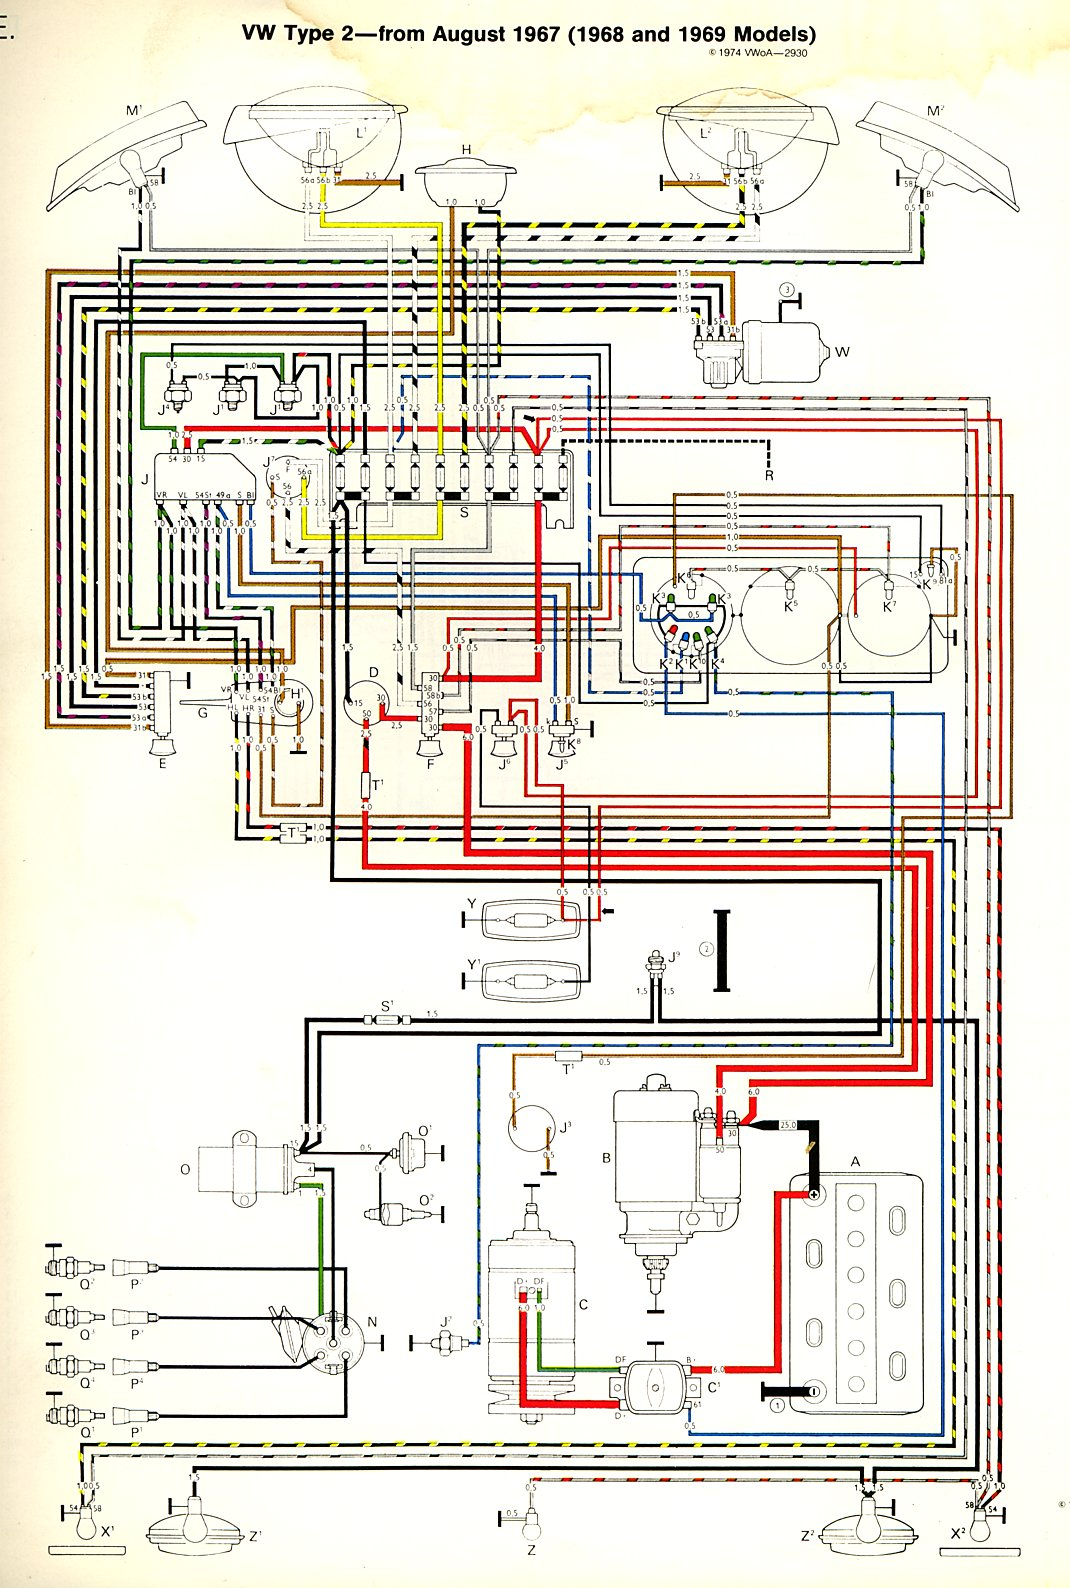 hight resolution of 1968 69 bus wiring diagram thegoldenbug com vw dune buggy wiring schematic vw voltage regulator wiring diagram